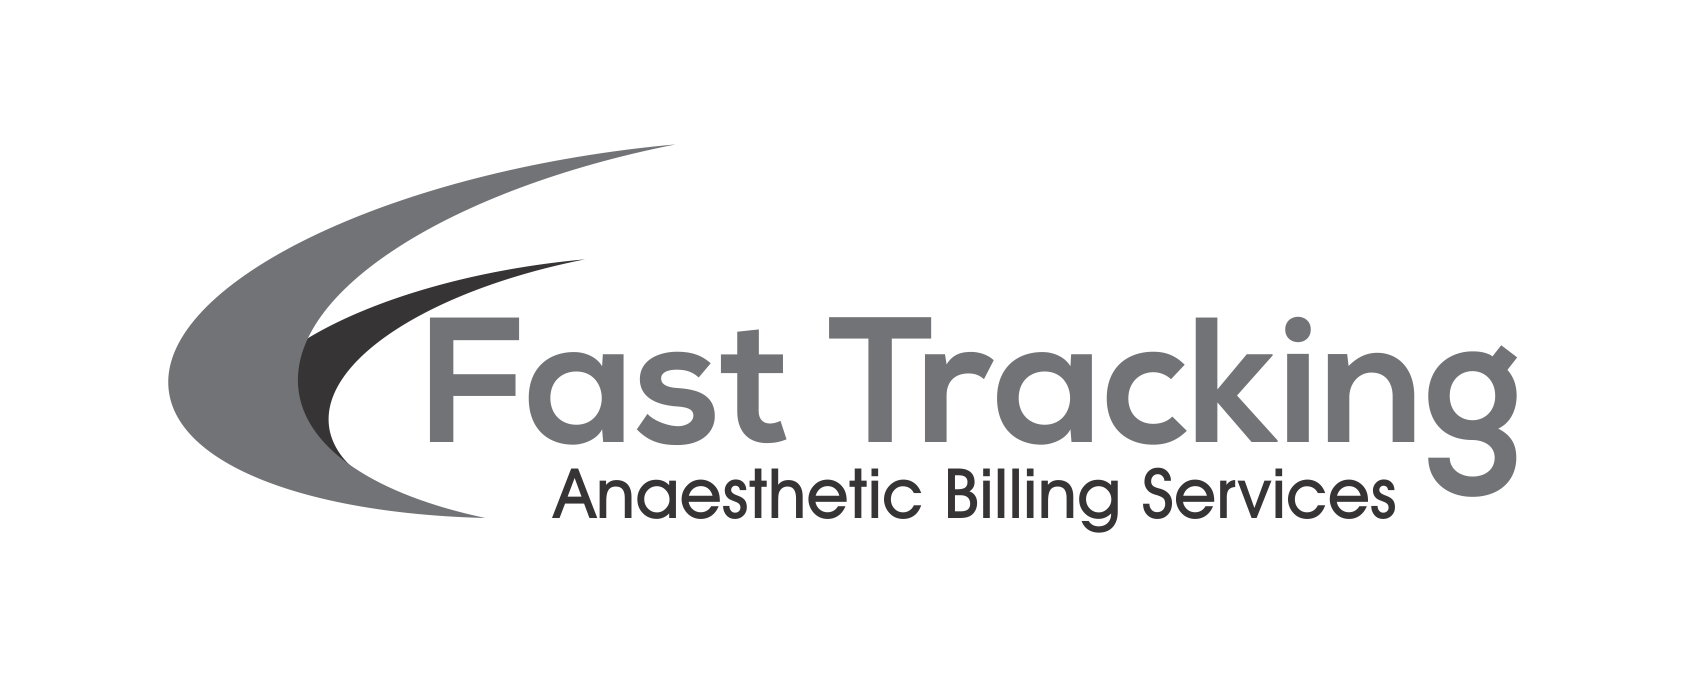 Fast Tracking Anaesthetic Billing Services